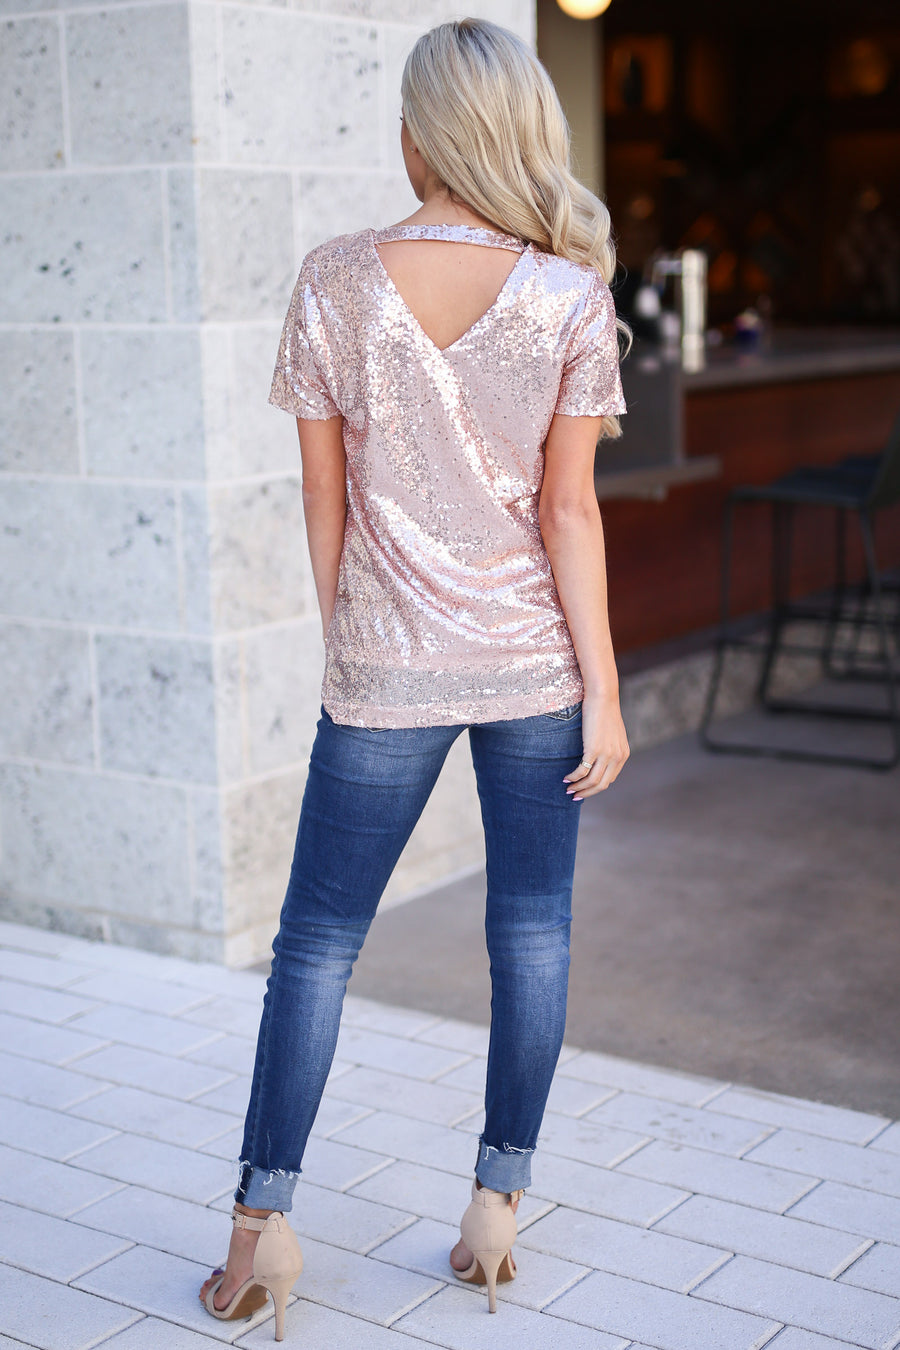 Born To Sparkle Sequin Top - Rose Gold sequins short sleeve top with back detail, closet candy boutique 1